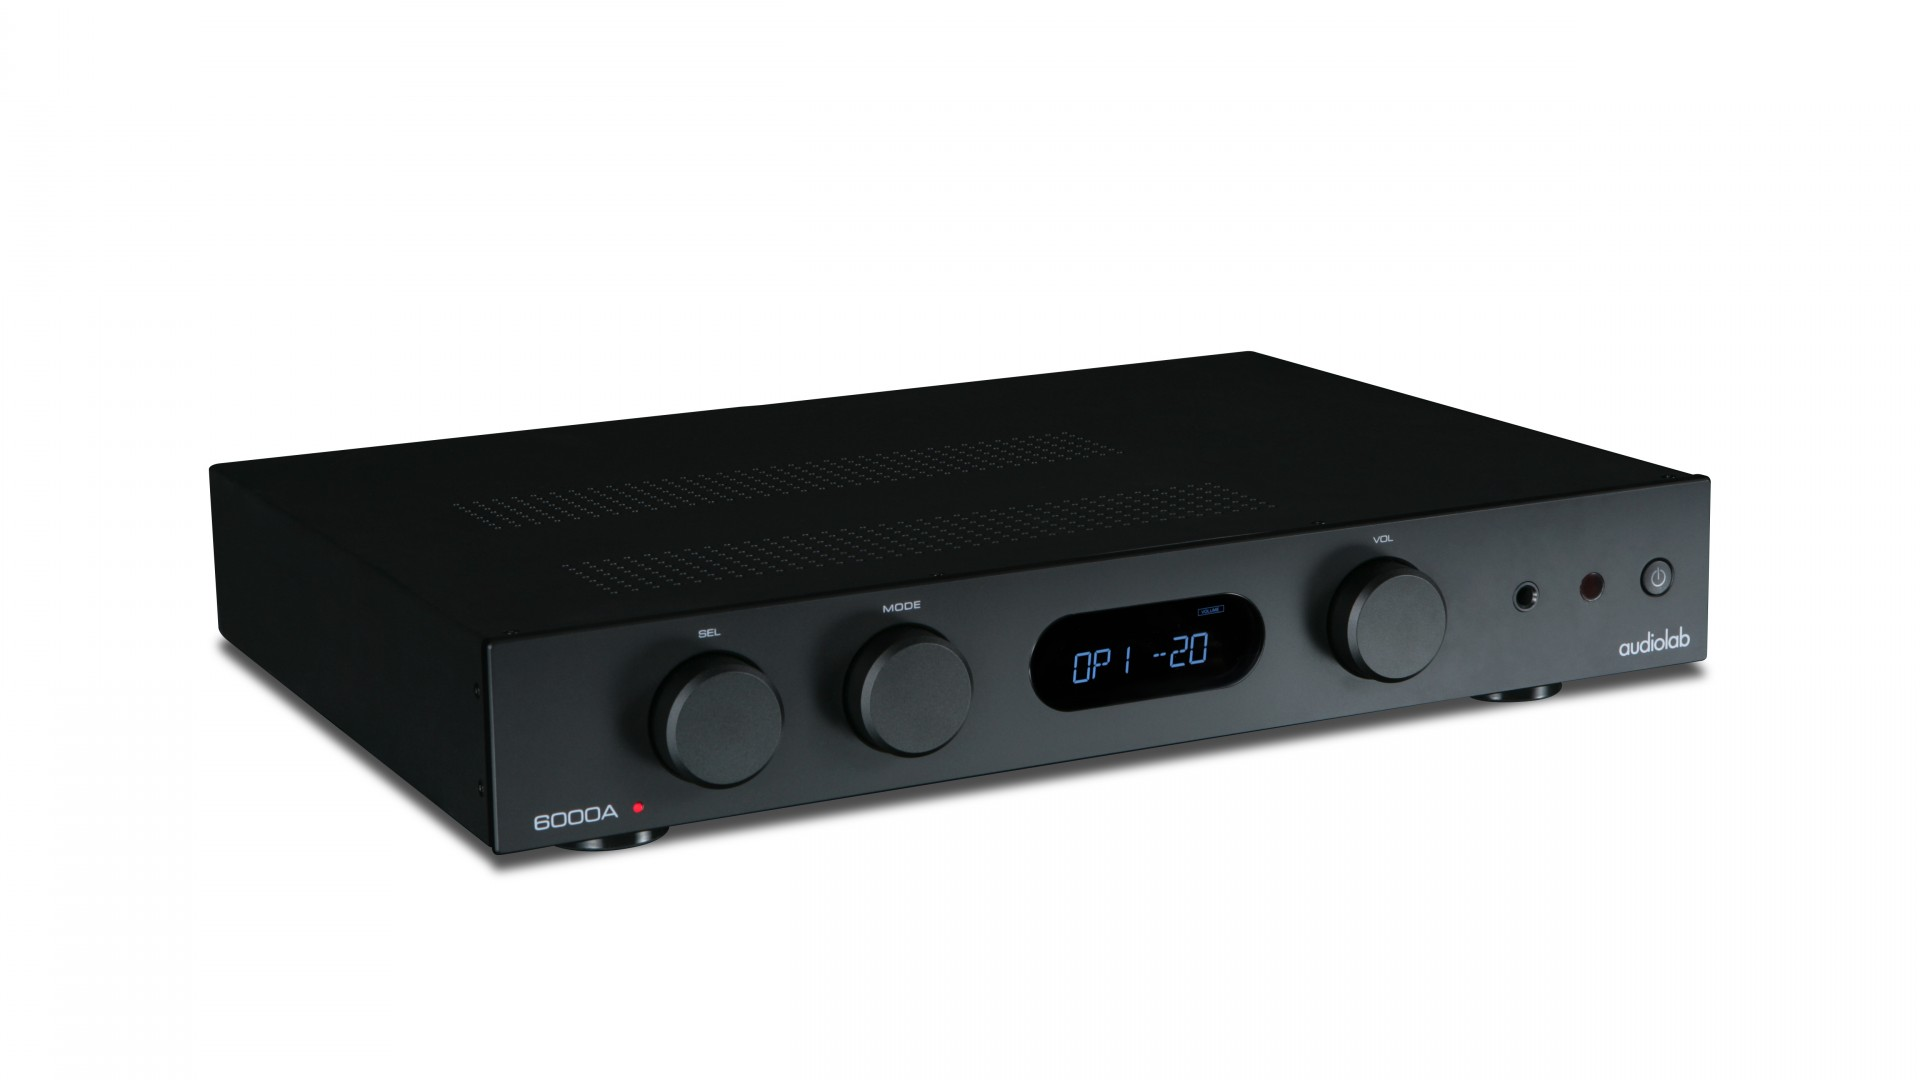 The Audiolab 6000A amplifier in black